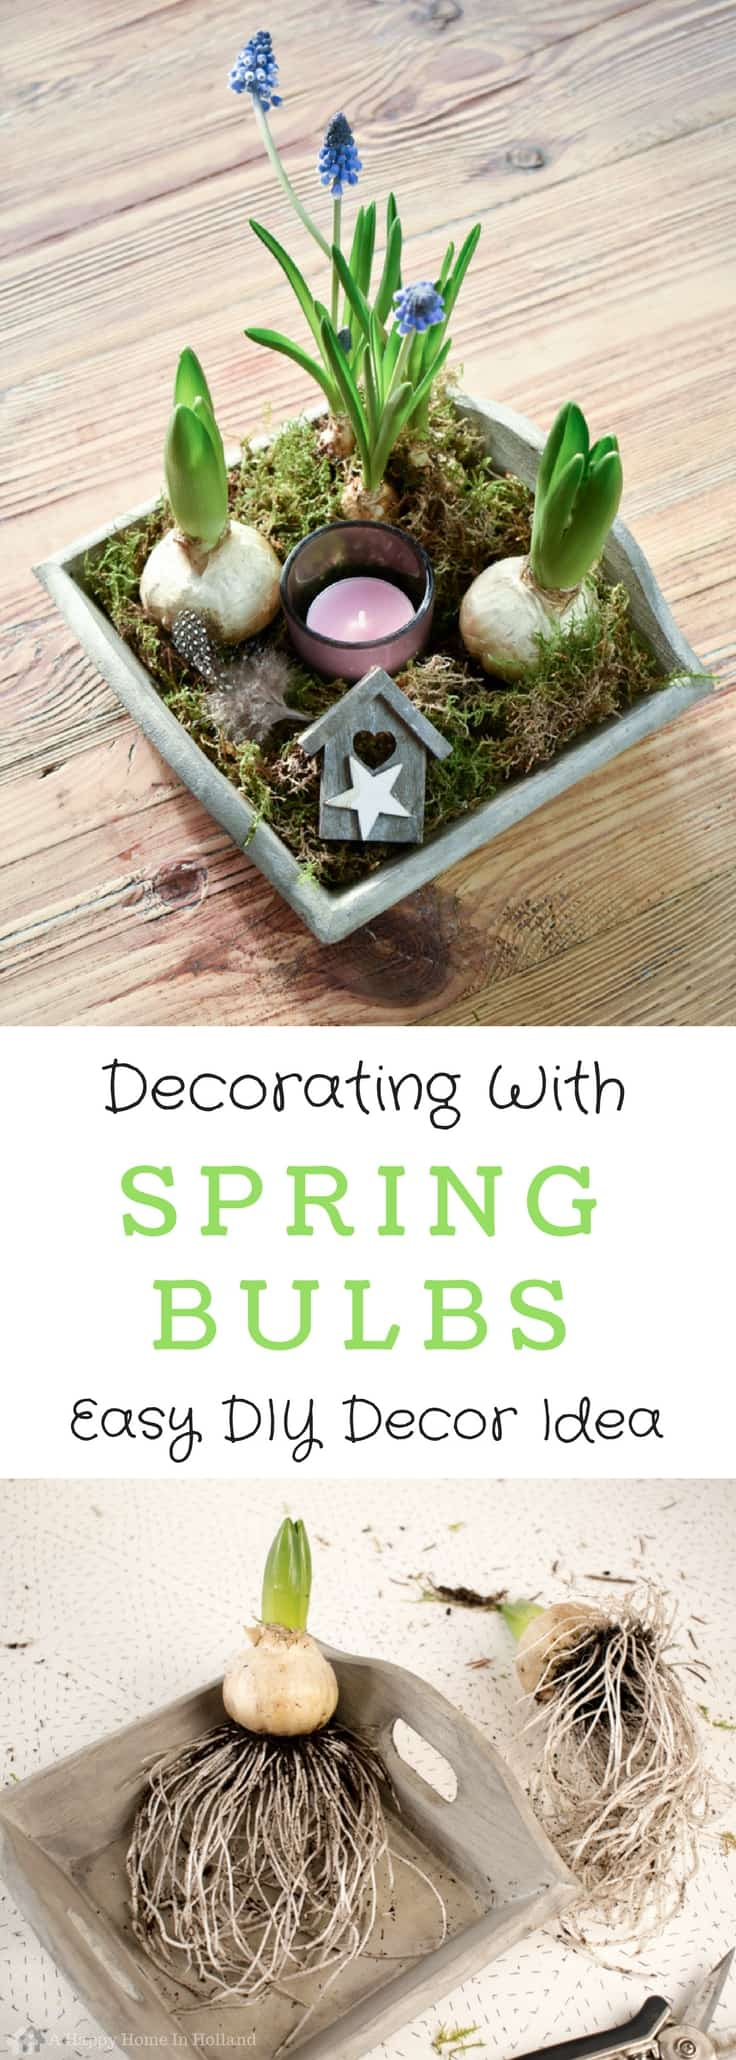 Decorating With Spring Bulbs: Simple Hyacinth & Muscari Display Idea